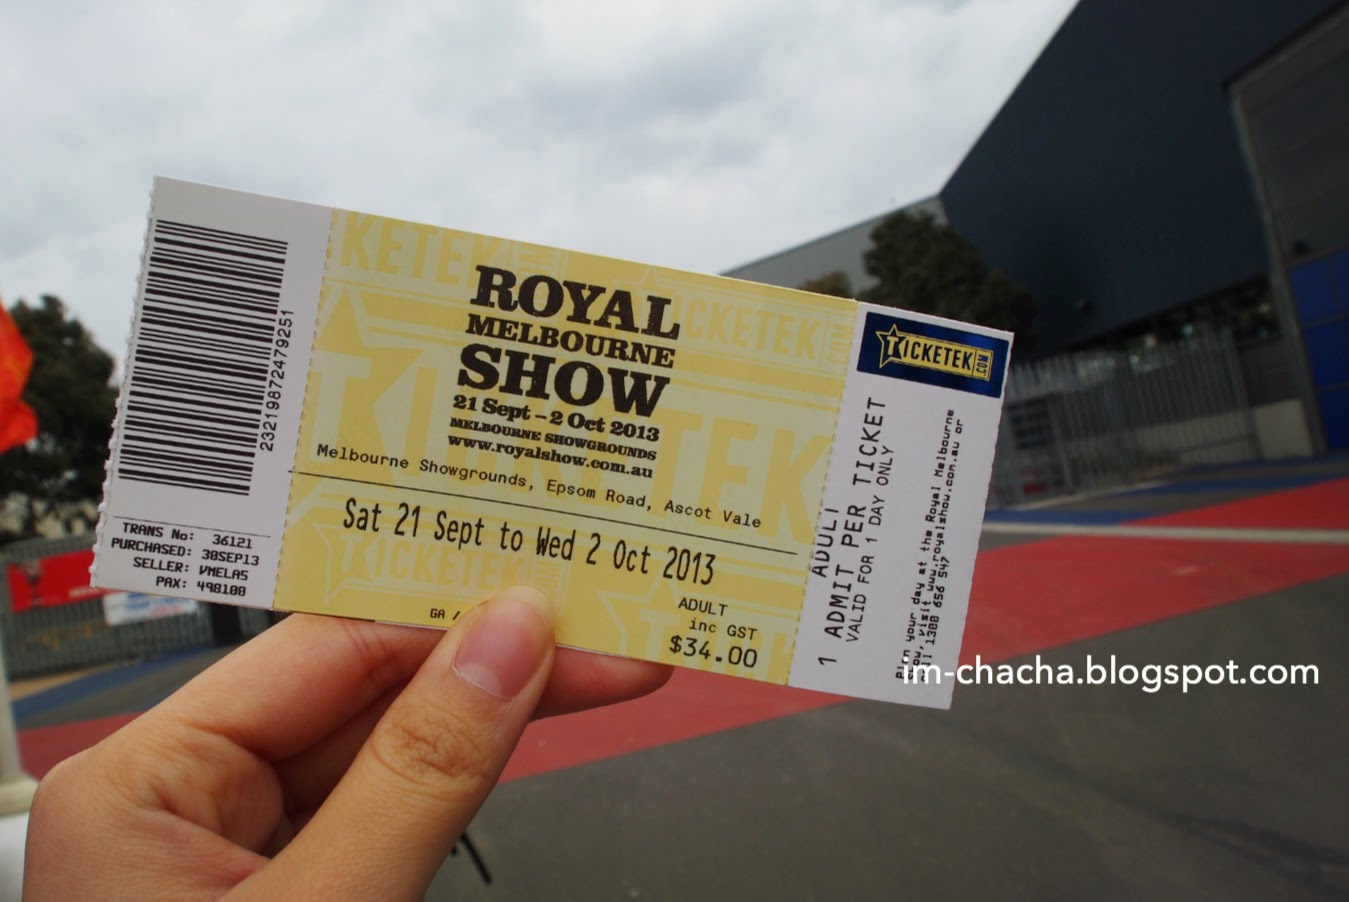 royal melbourne show tickets - photo #1